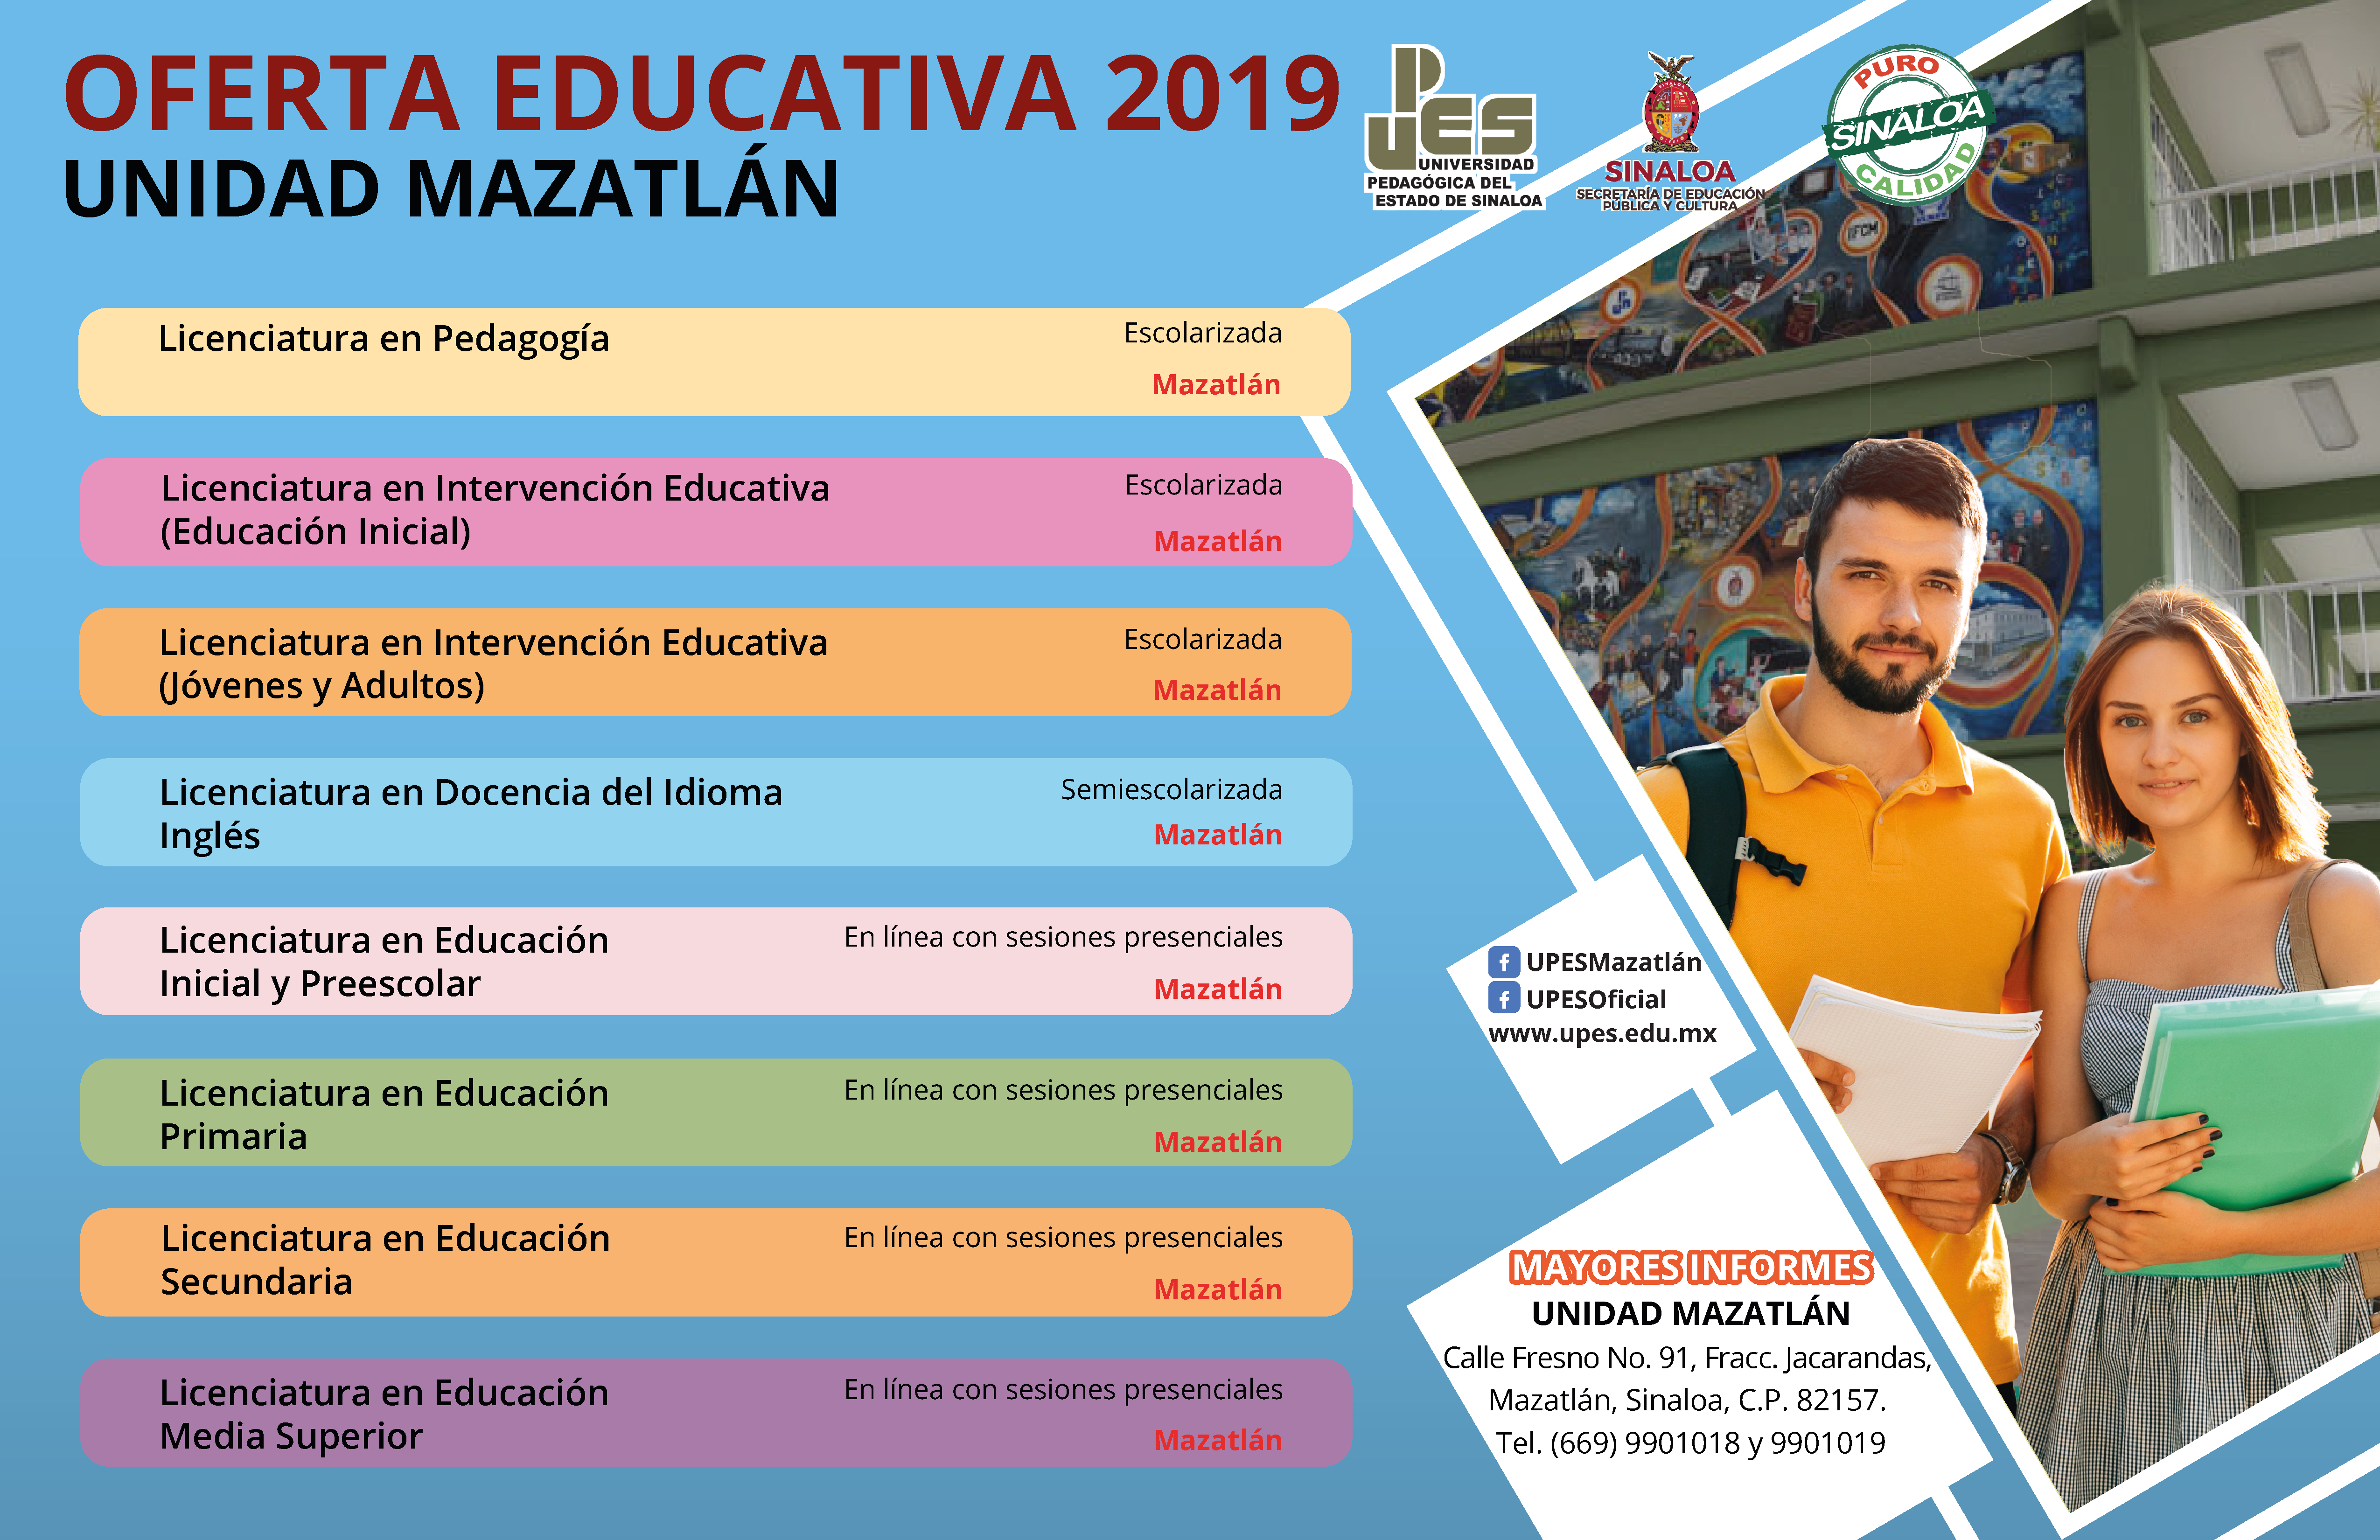 Oferta-Educativa-2019-Mazatlan-copia300x